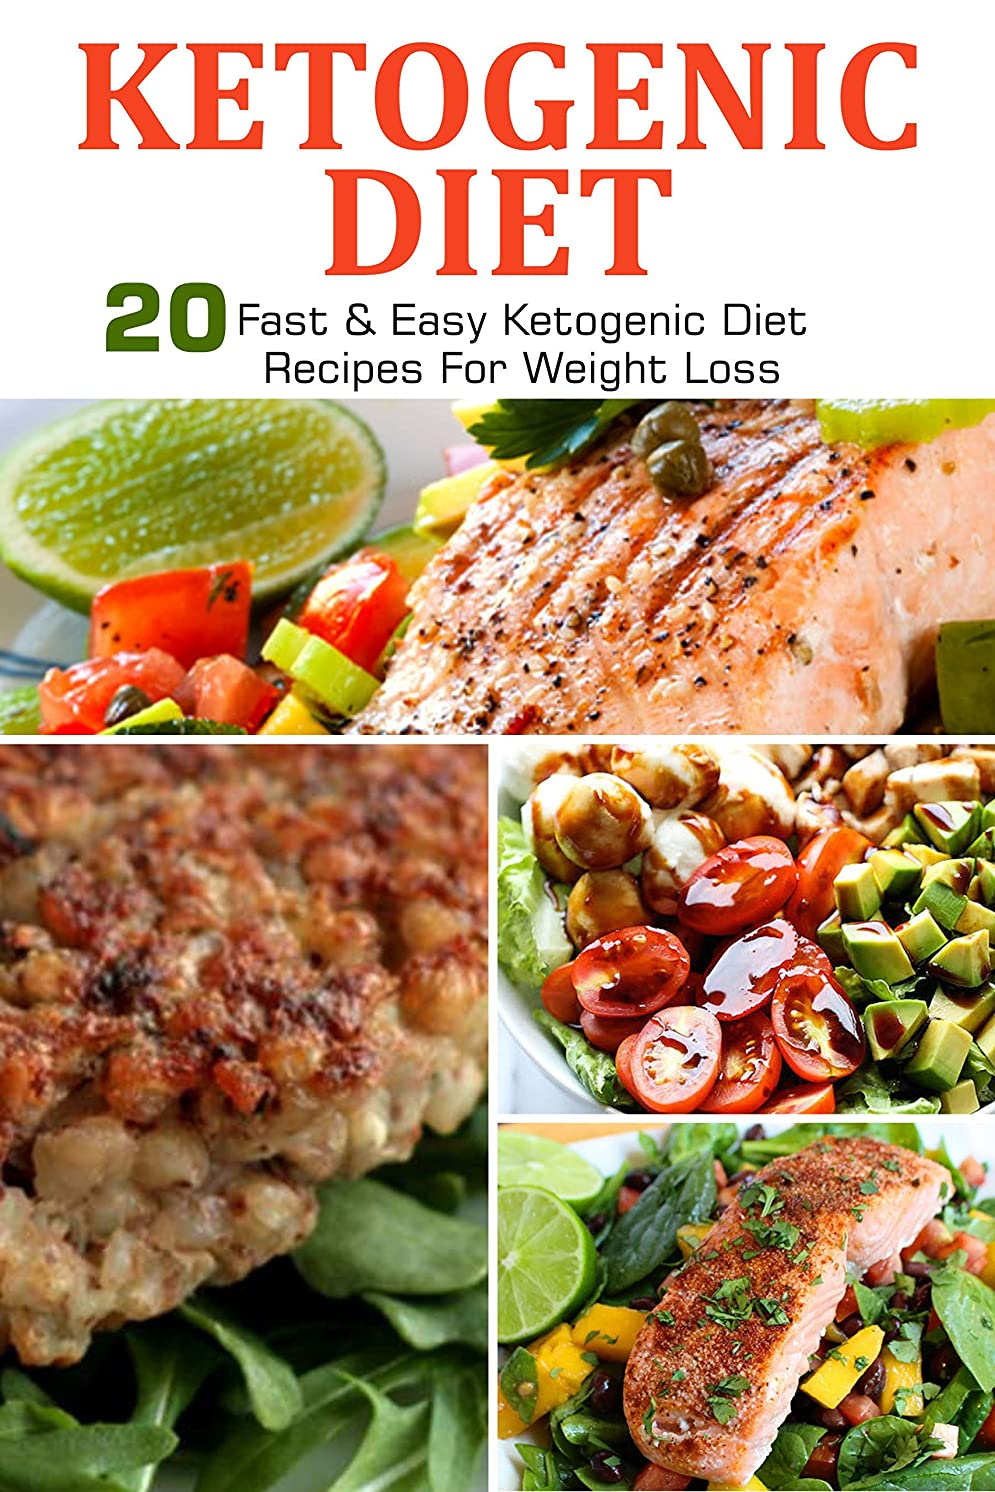 Ketogenic Diet: 20 Fast & Easy Ketogenic Diet Recipes For Weight Loss. (Low Carb Diet, Cookbook, Weight Loss, Diet Recipes) (English Edition)